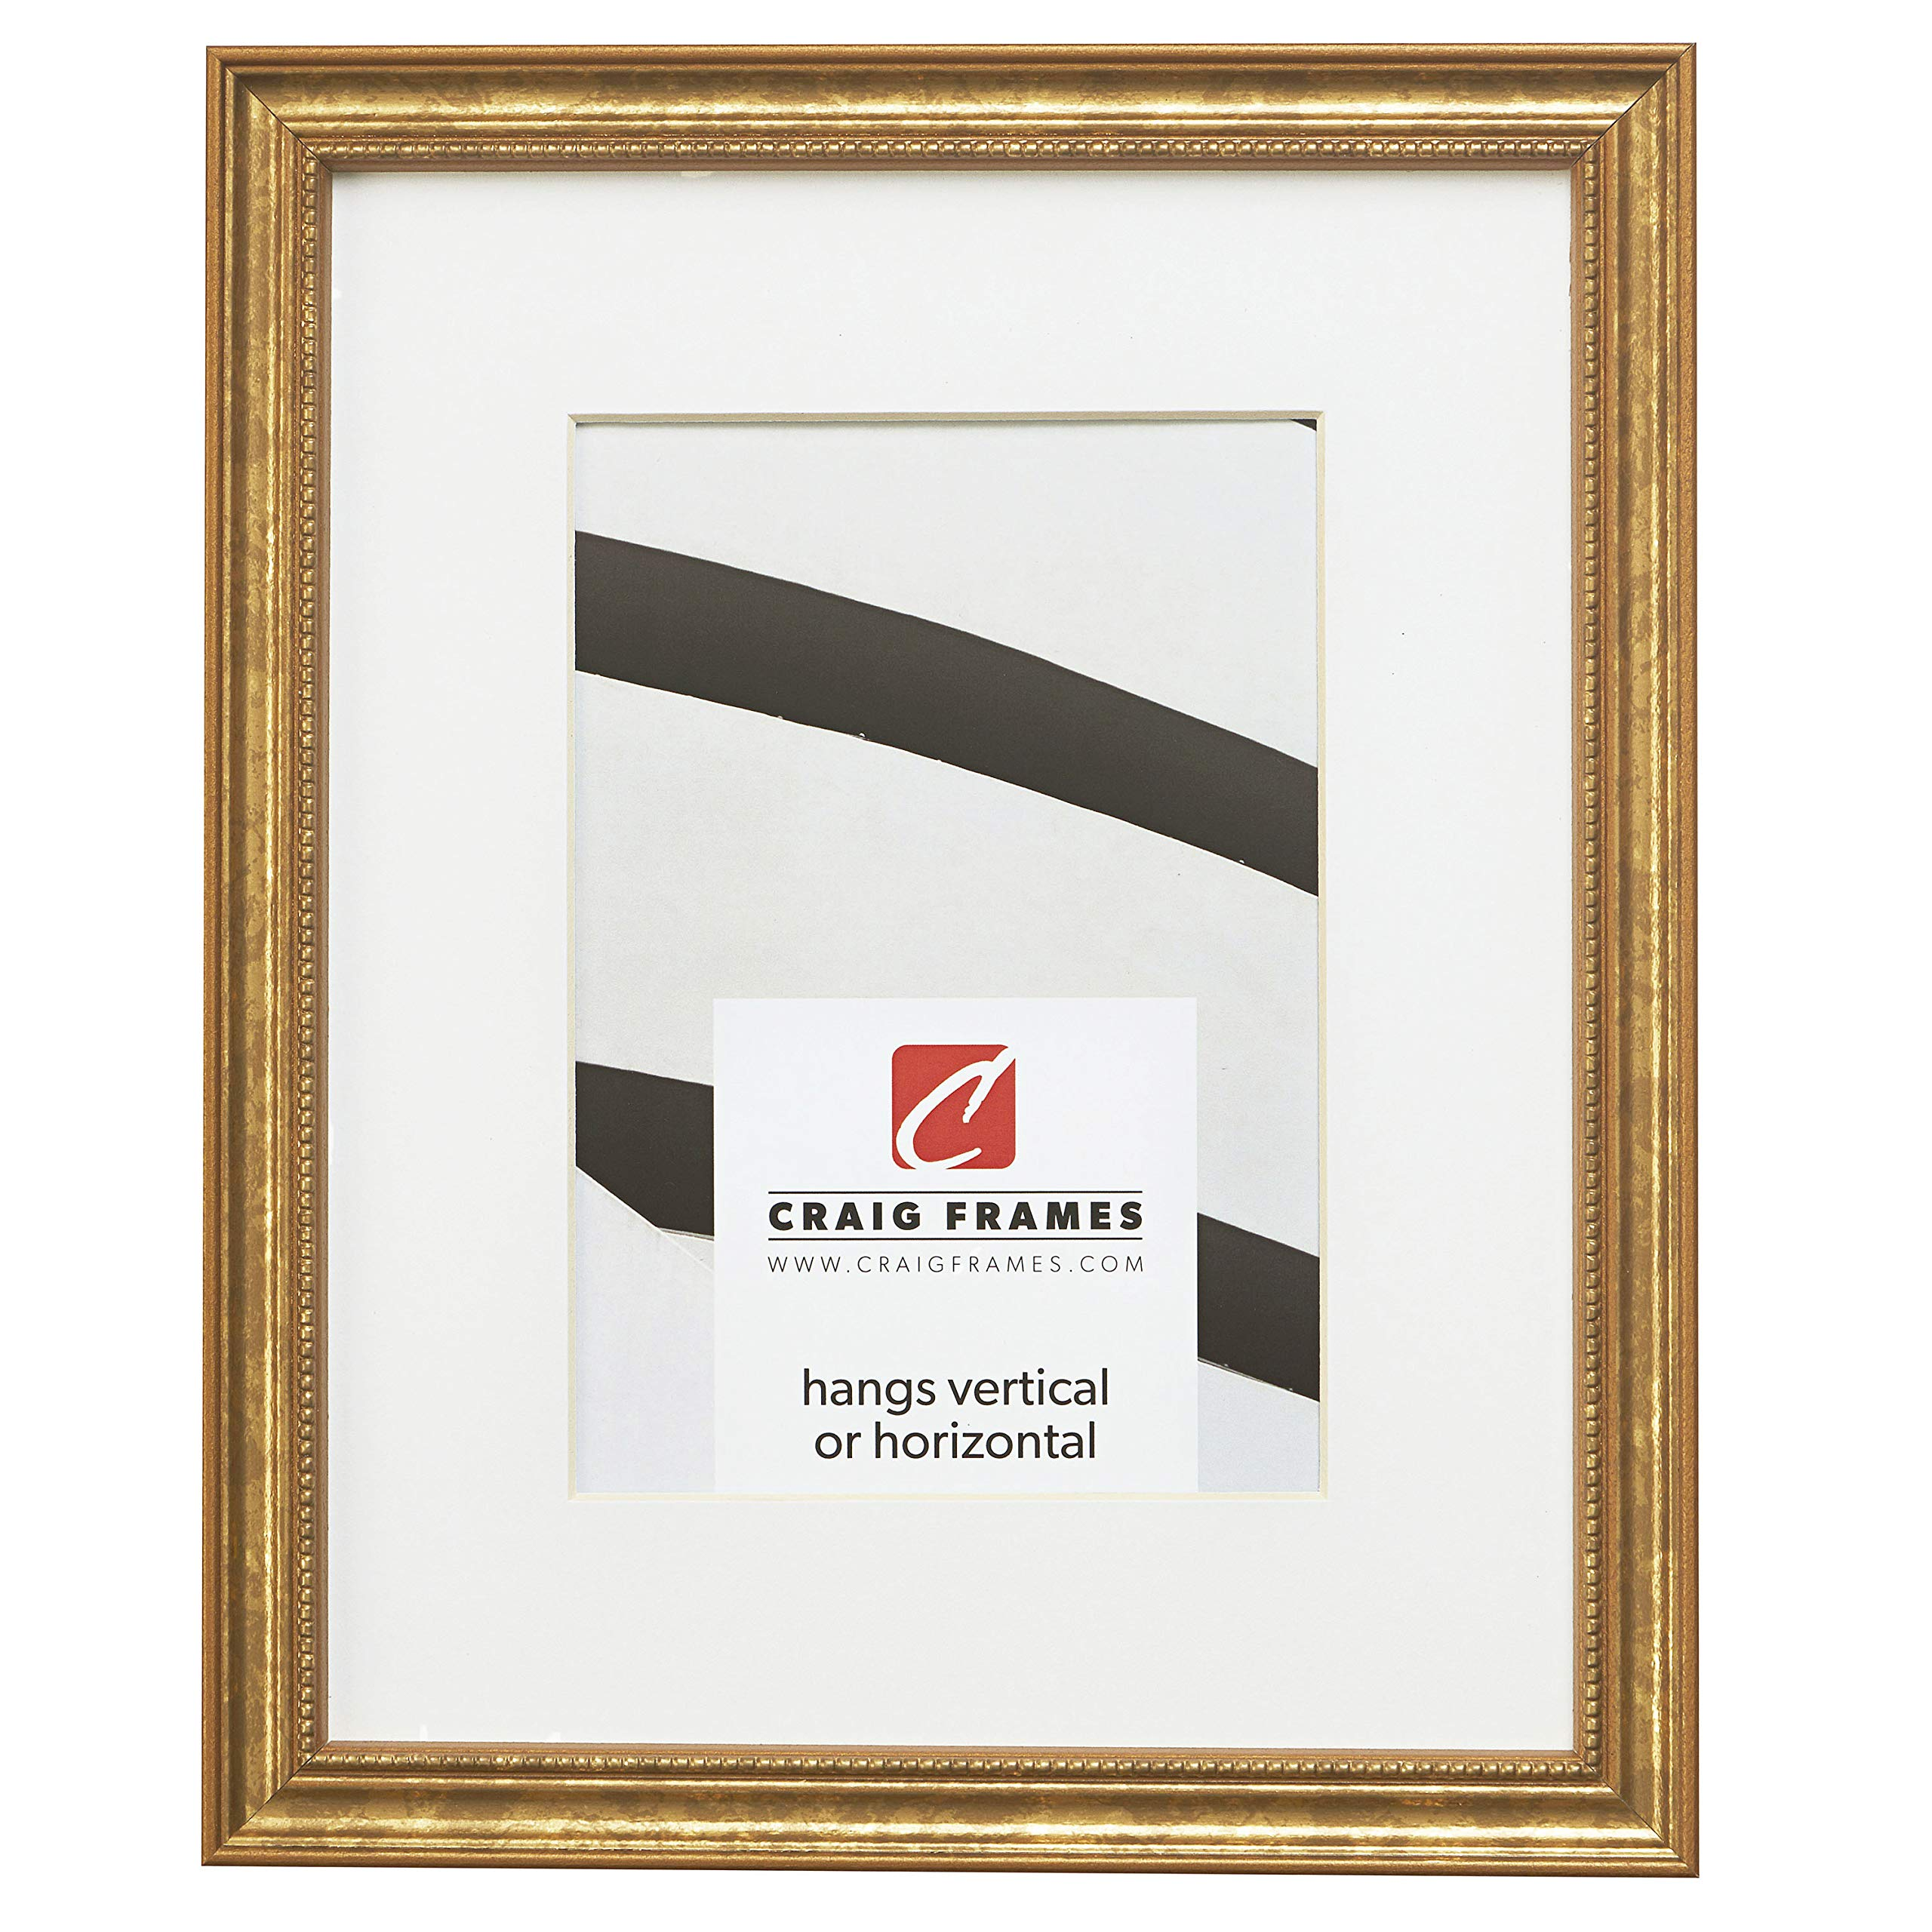 Craig Frames 314GD 20 x 24 Inch Ornate Gold Picture Frame Matted to Display a 16 x 20 Inch Photo by Craig Frames